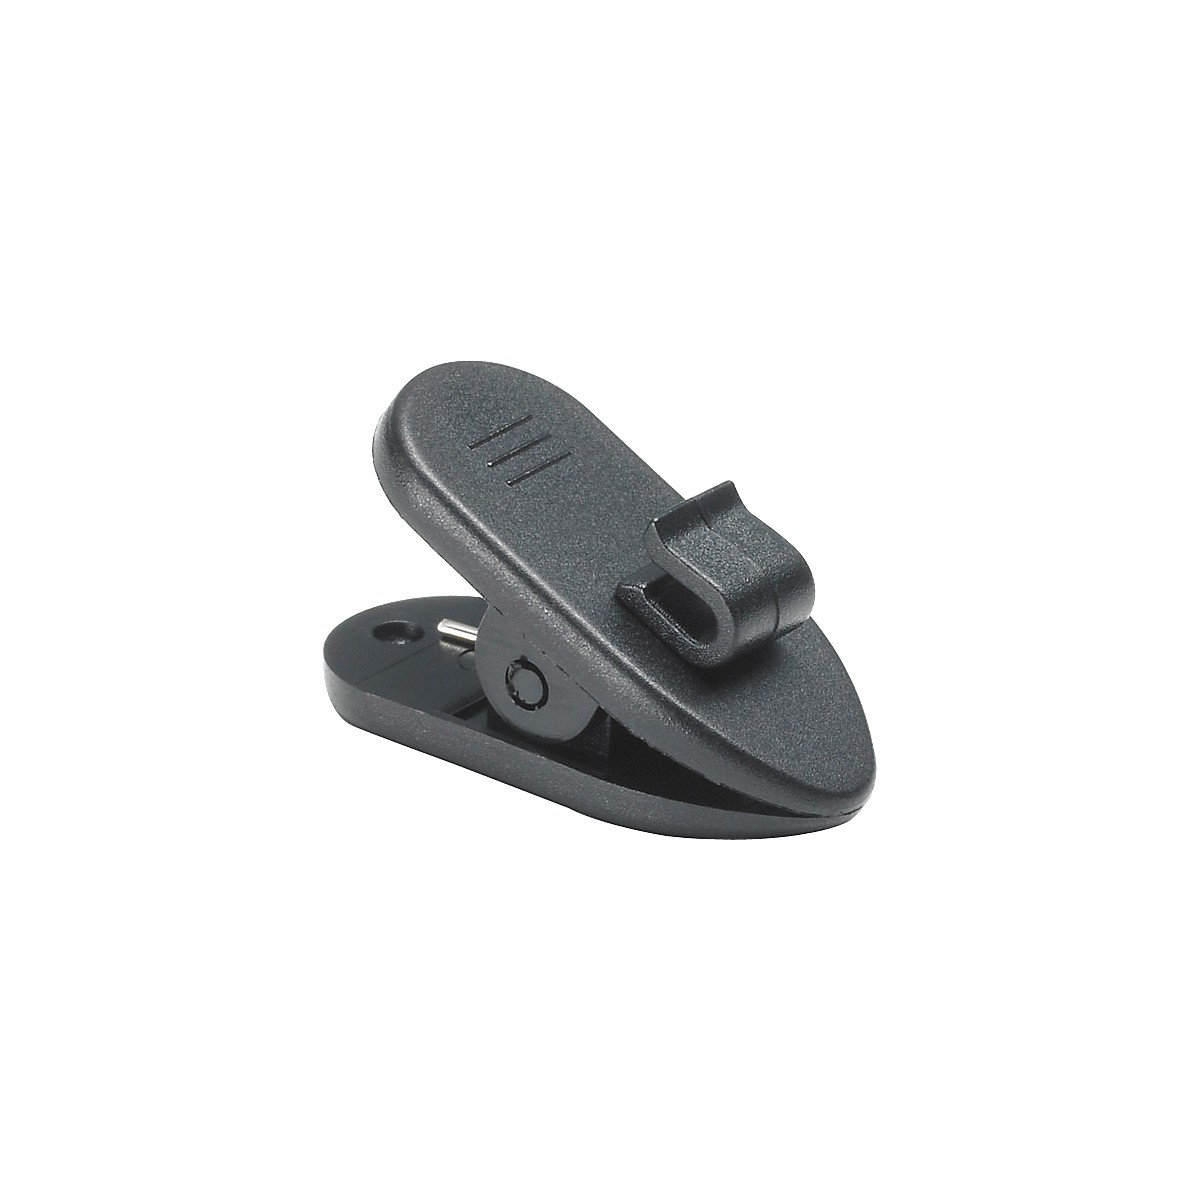 Audio-Technica AT8442 Lavalier Microphone Clip